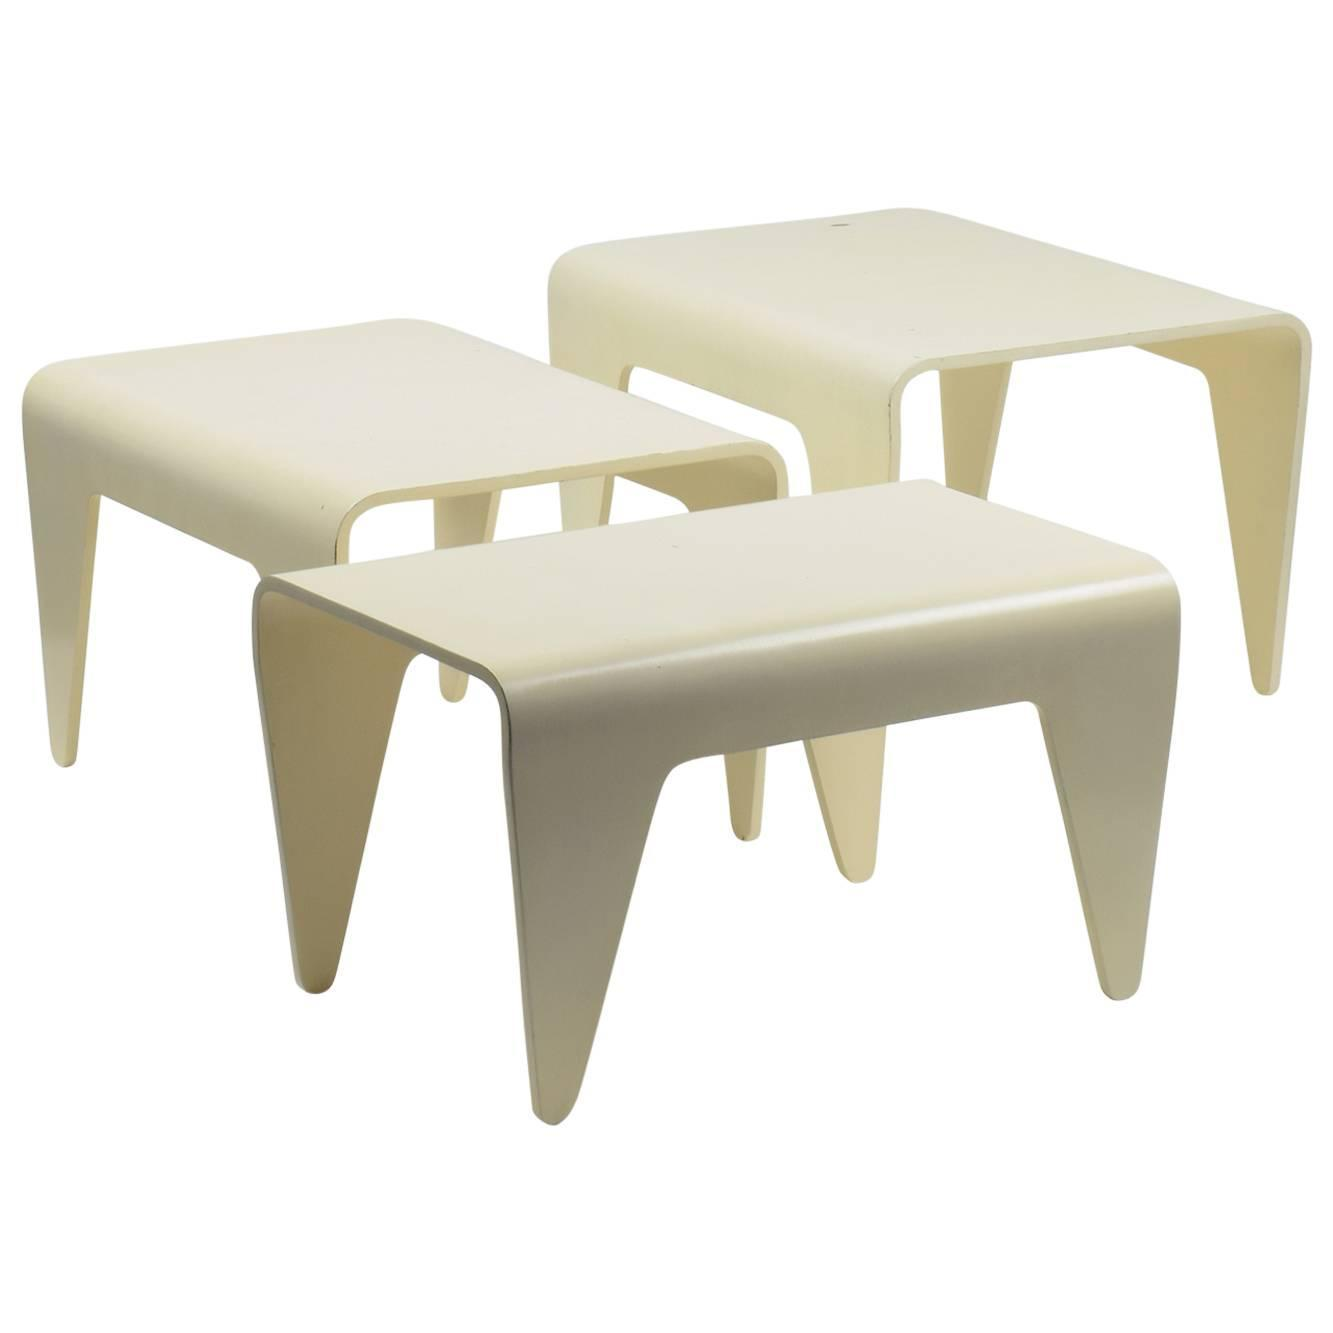 Marcel breuer isokon tables set of three nesting tables for marcel breuer isokon tables set of three nesting tables for isokon 1936 for sale at 1stdibs geotapseo Choice Image